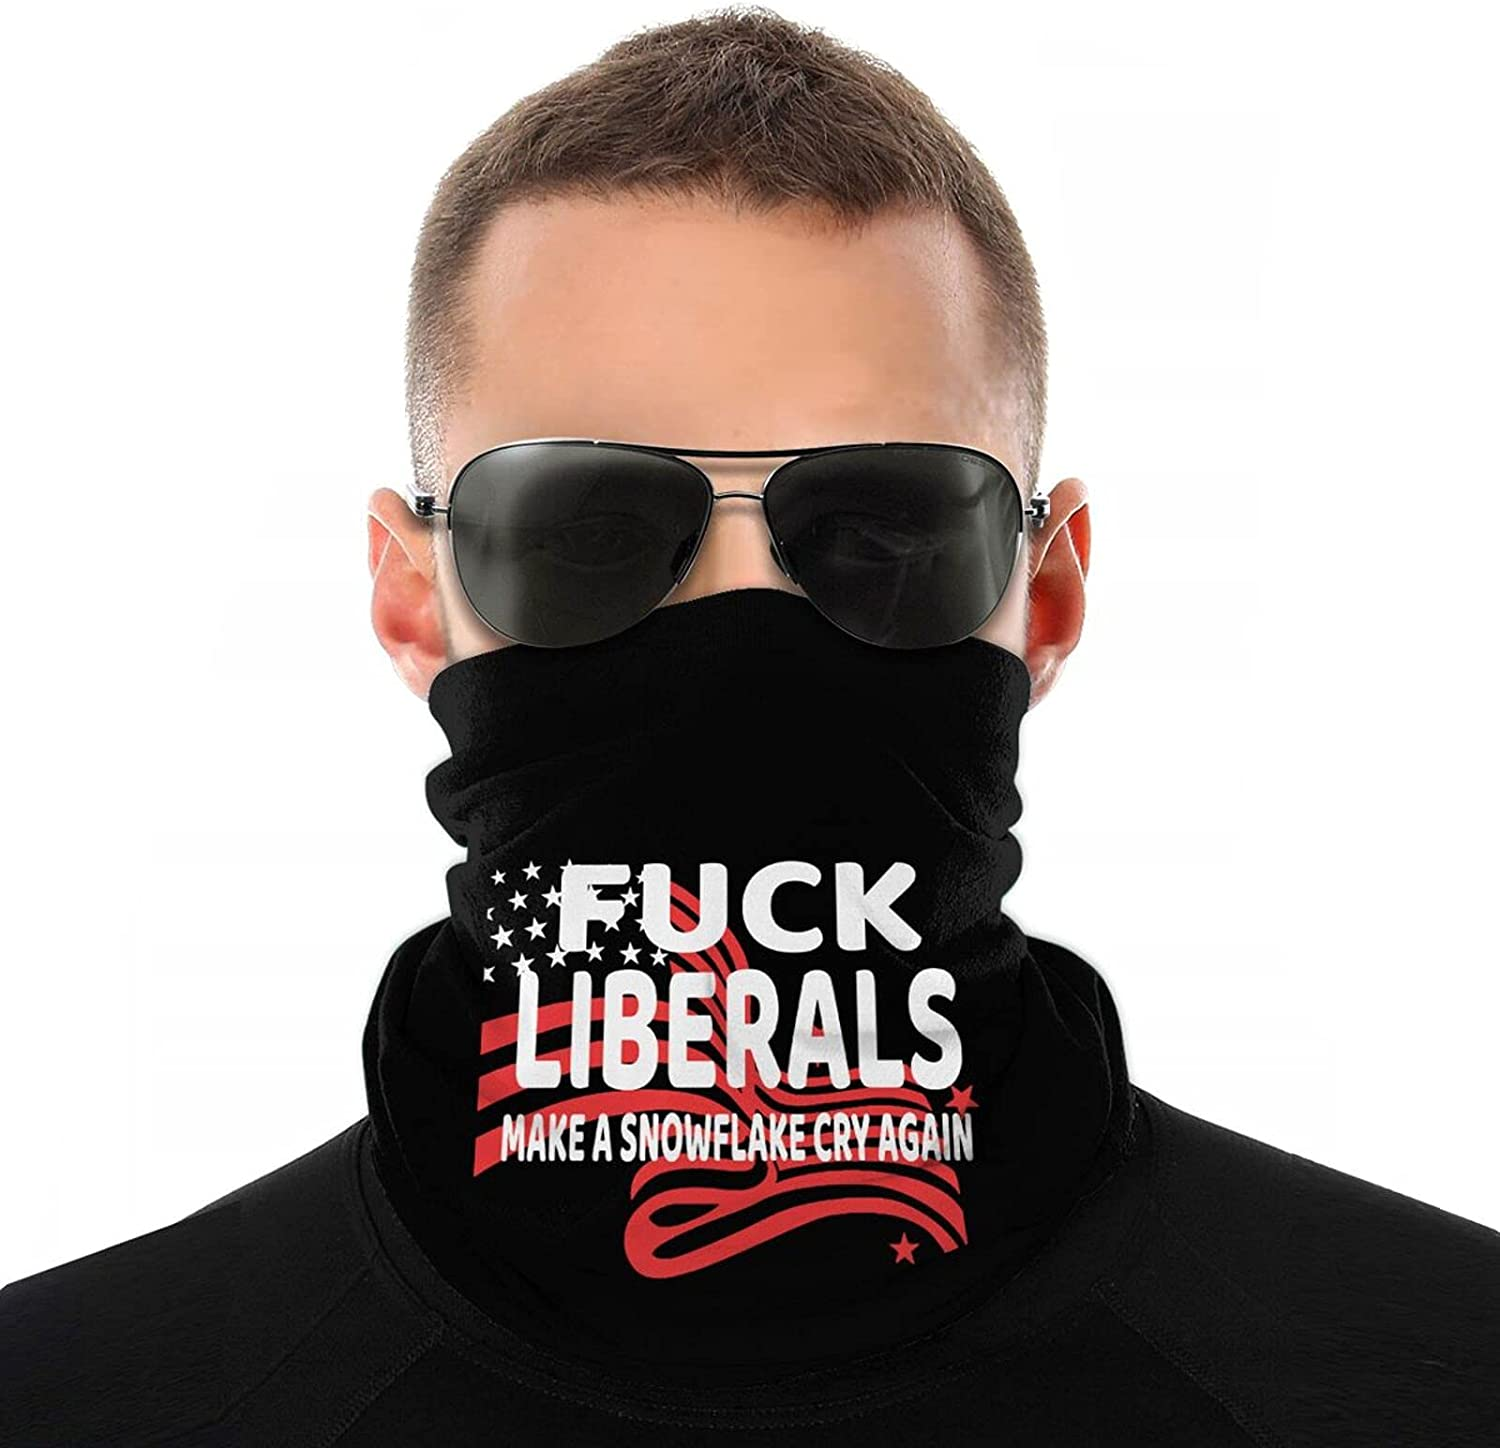 Double-Sided Cool Neck Gaiter Mask for Adult Fuck Liberals Full Face Covering Balaclava White